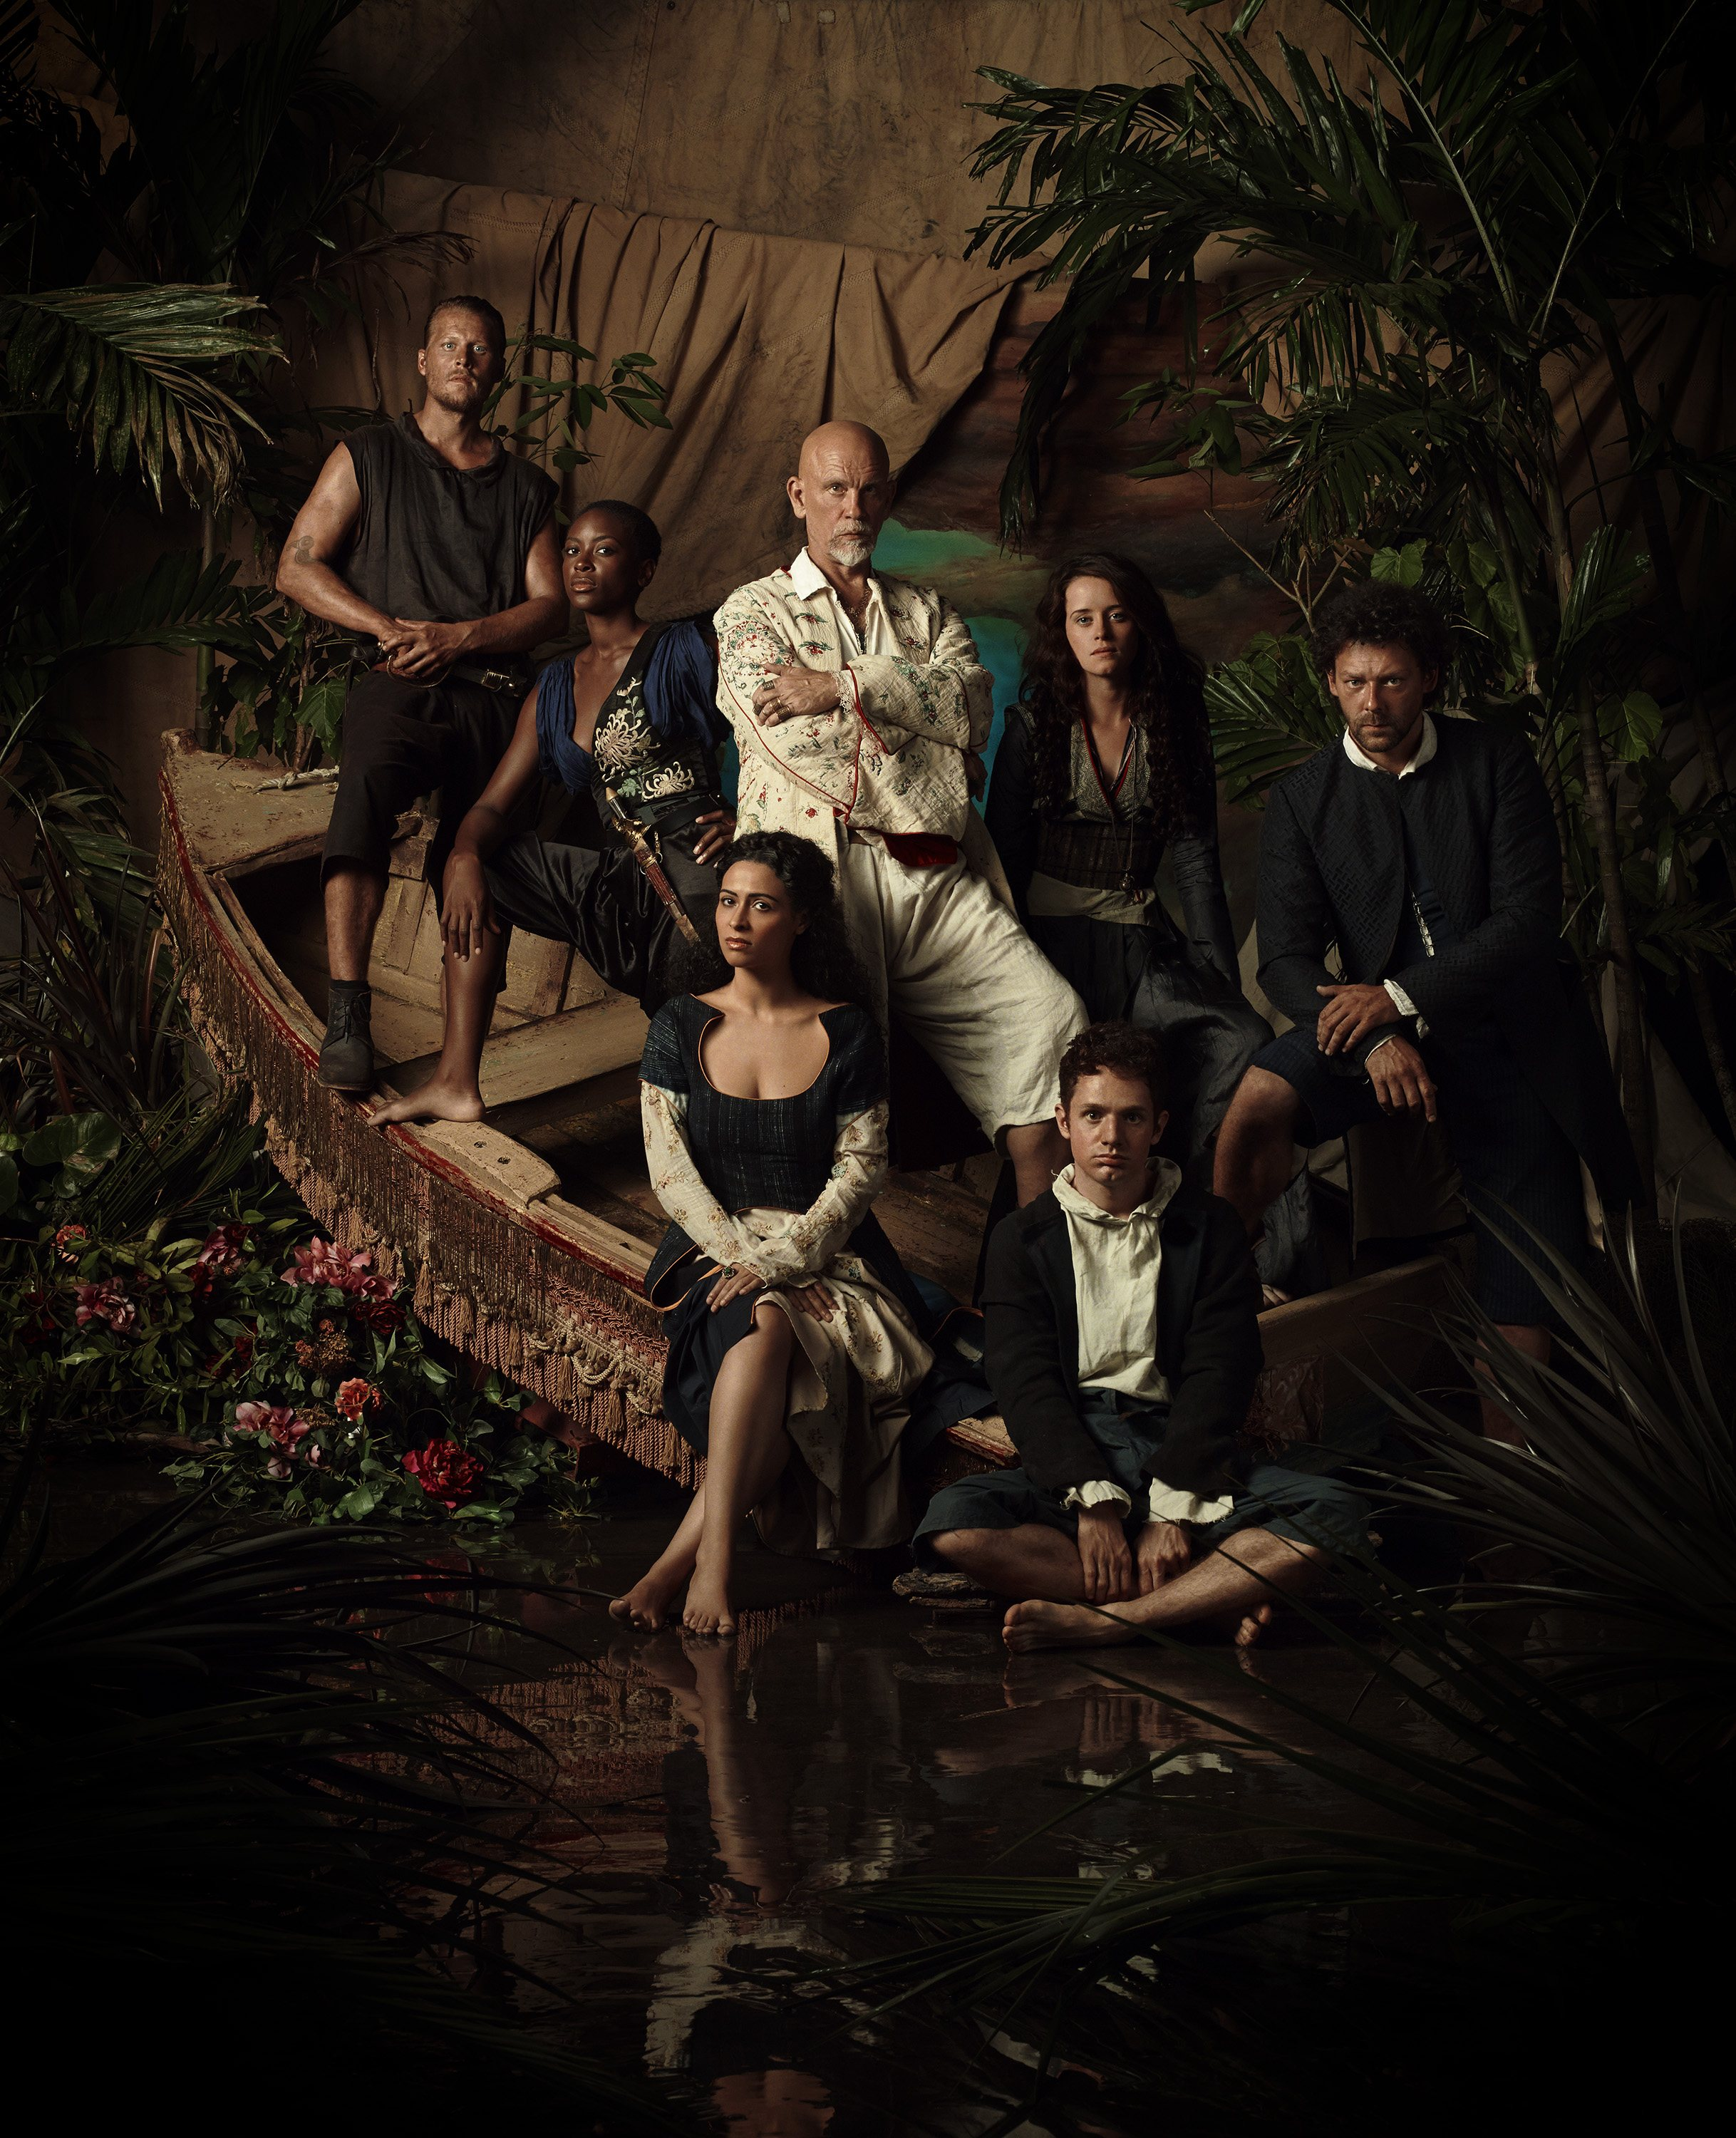 dating the enemy hd cast